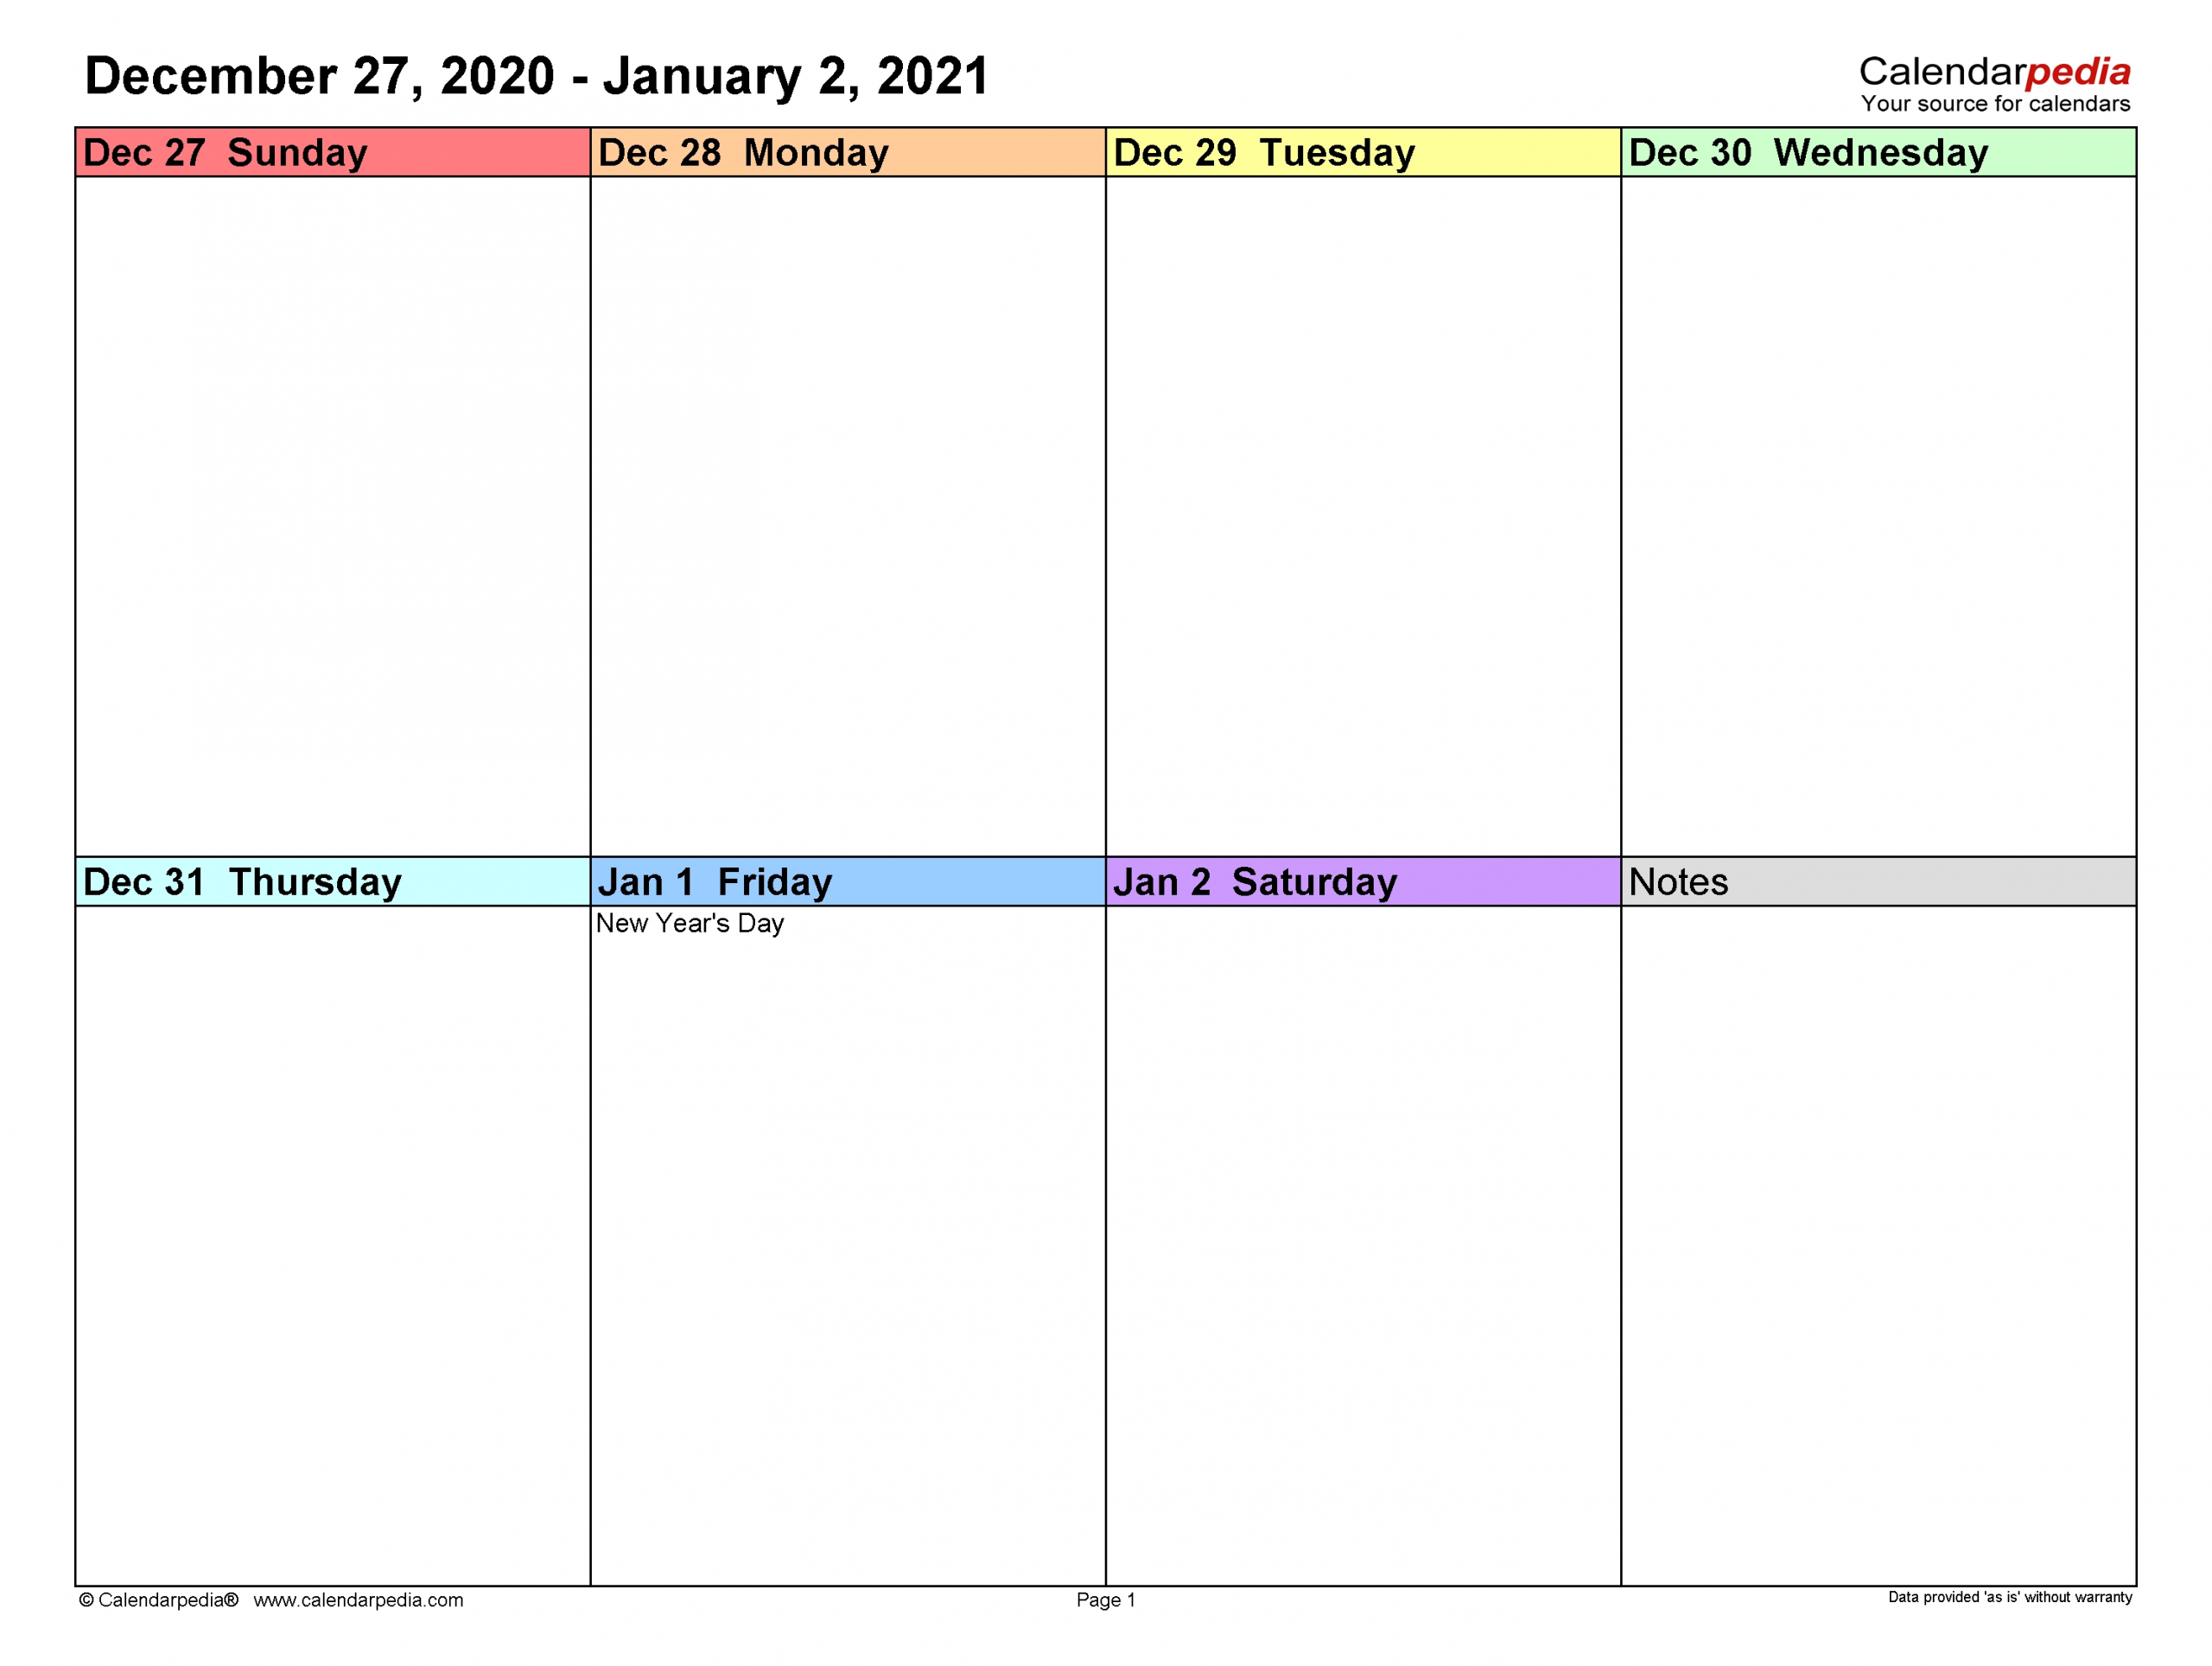 Weekly Calendars 2021 For Pdf - 12 Free Printable Templates-4 Inch By 7 Inch 2021 .Pdf Calendar